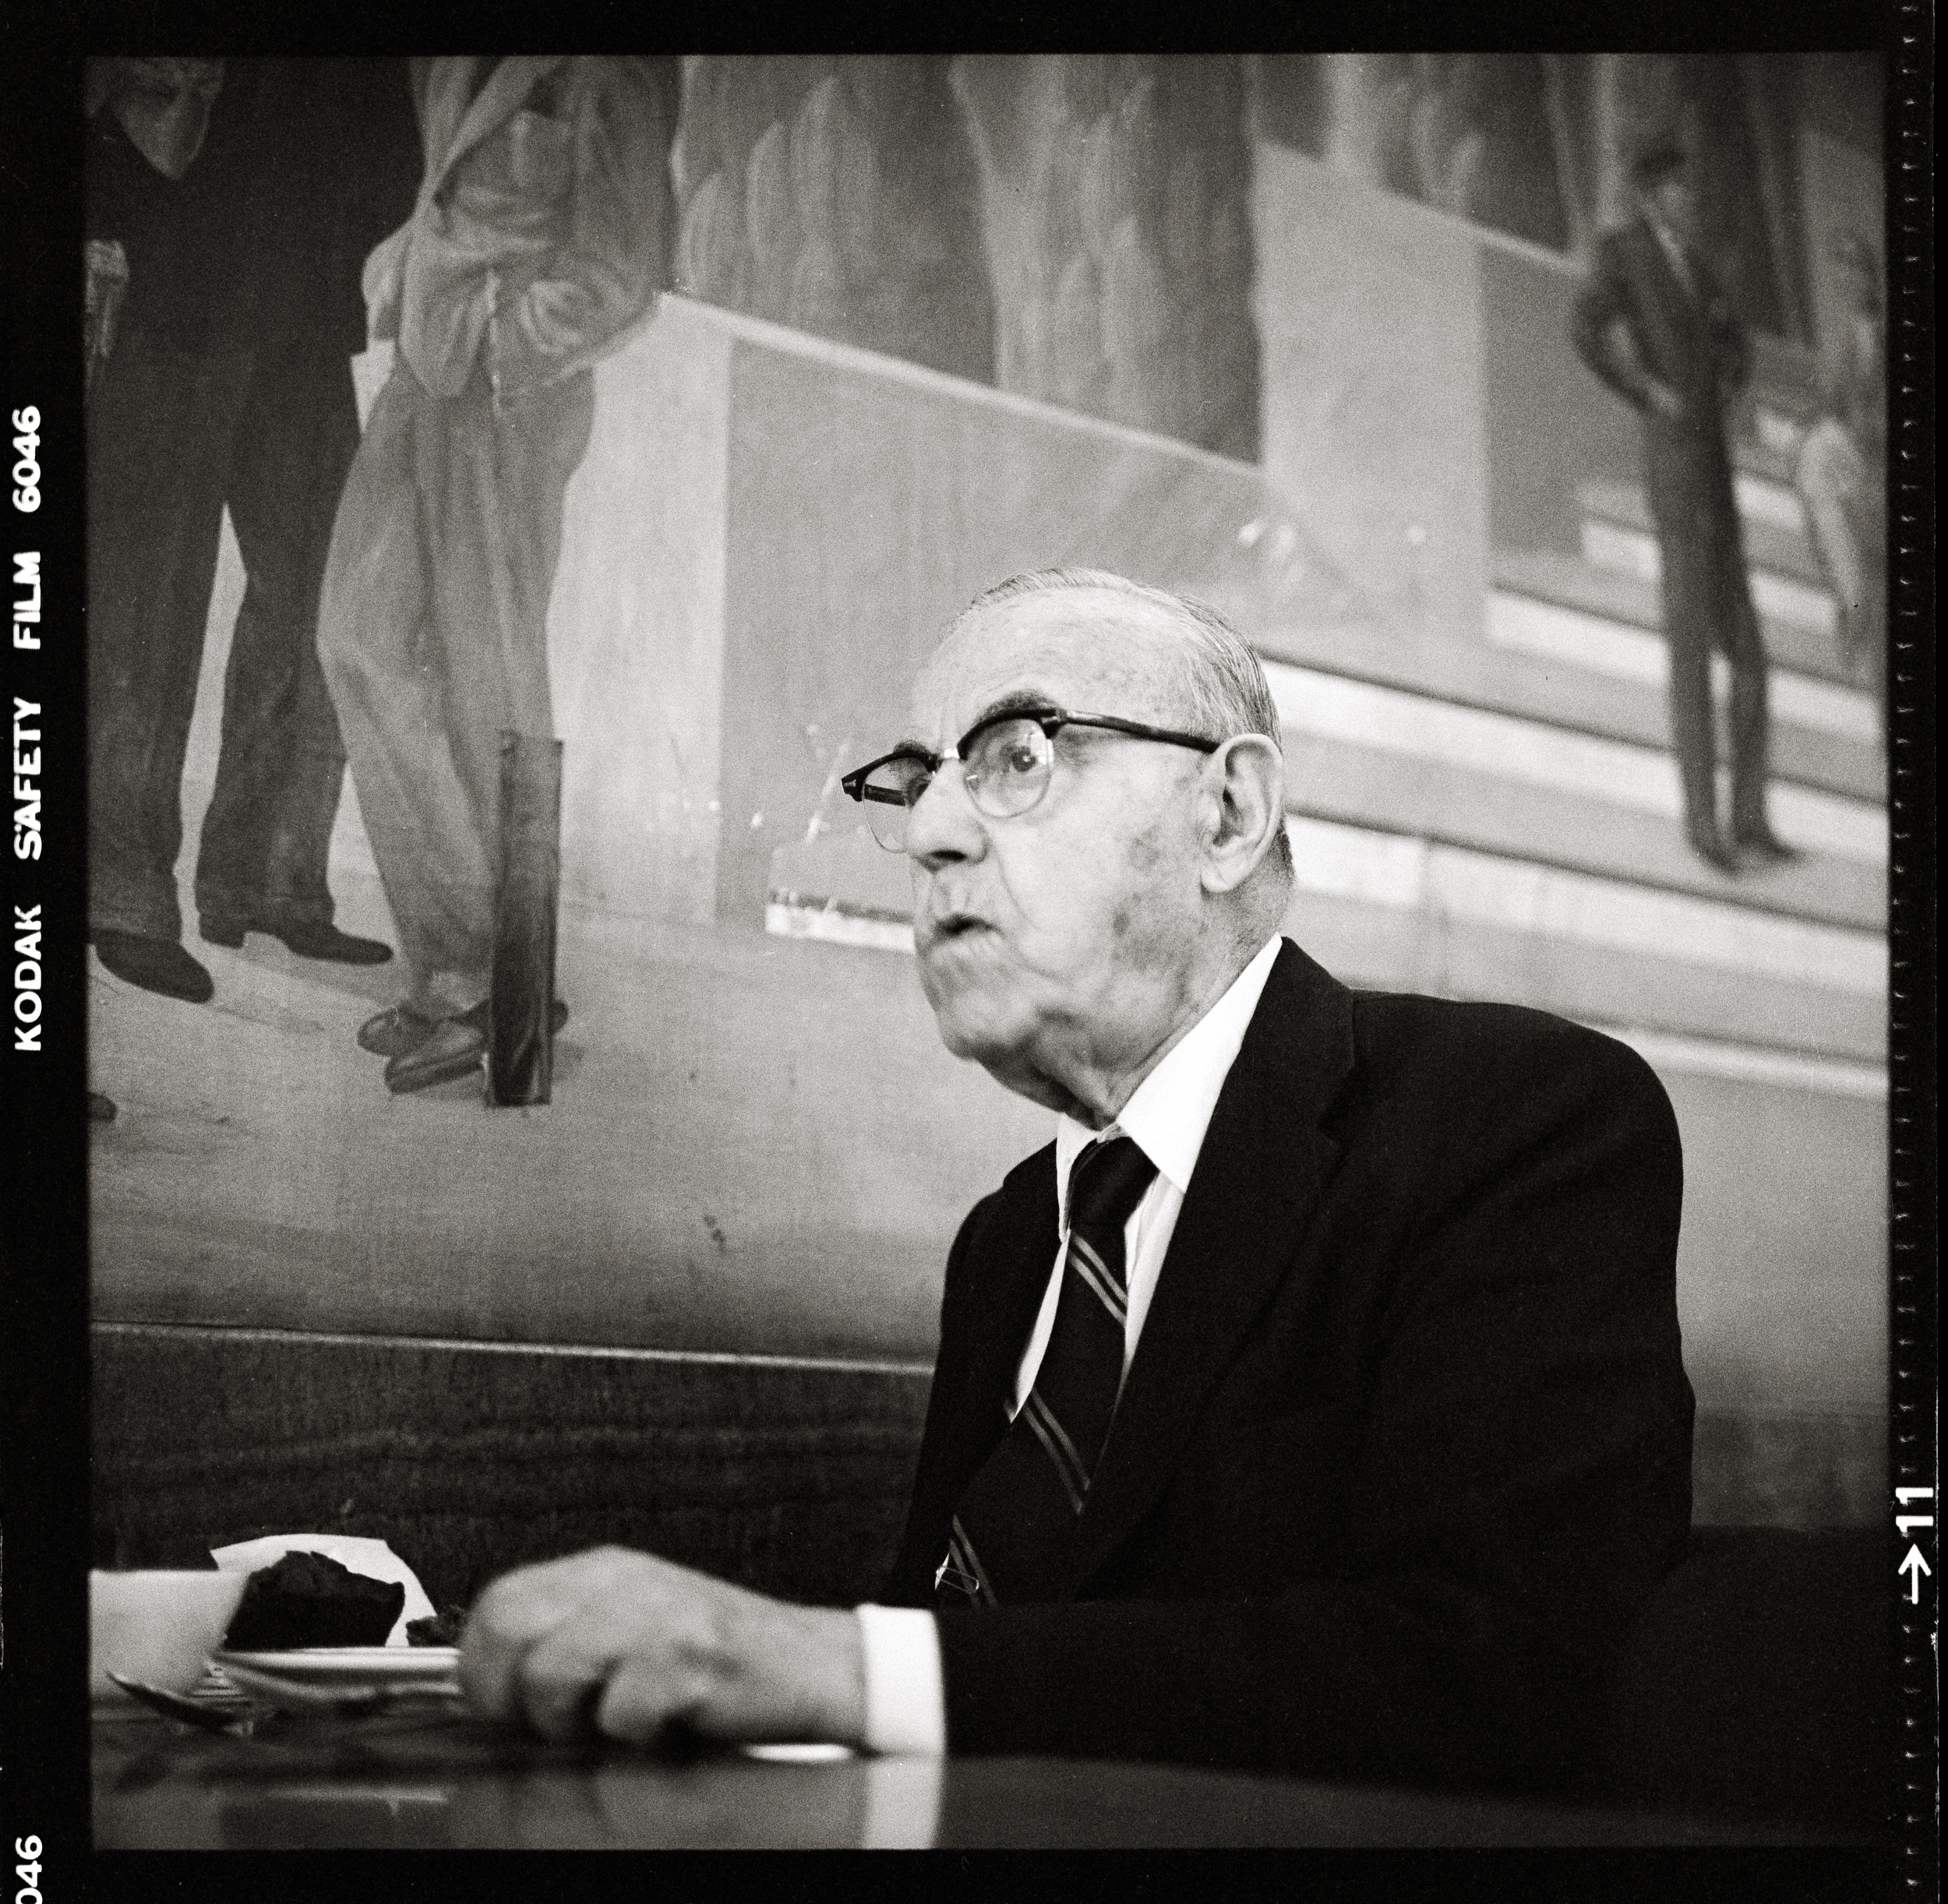 CafeteriaPortraits 10.jpg